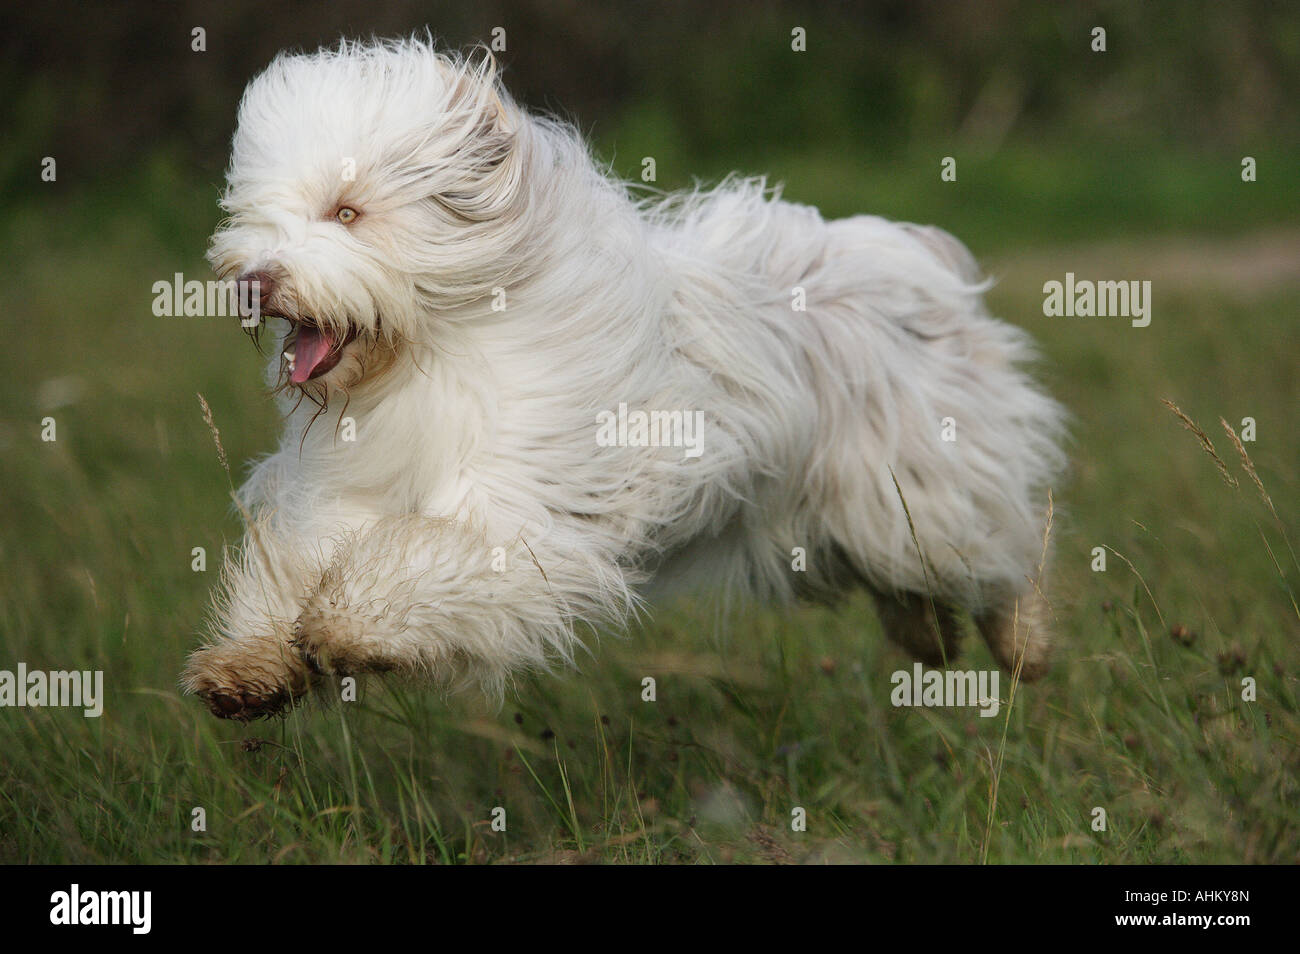 Bearded Collie - running on meadow - Stock Image